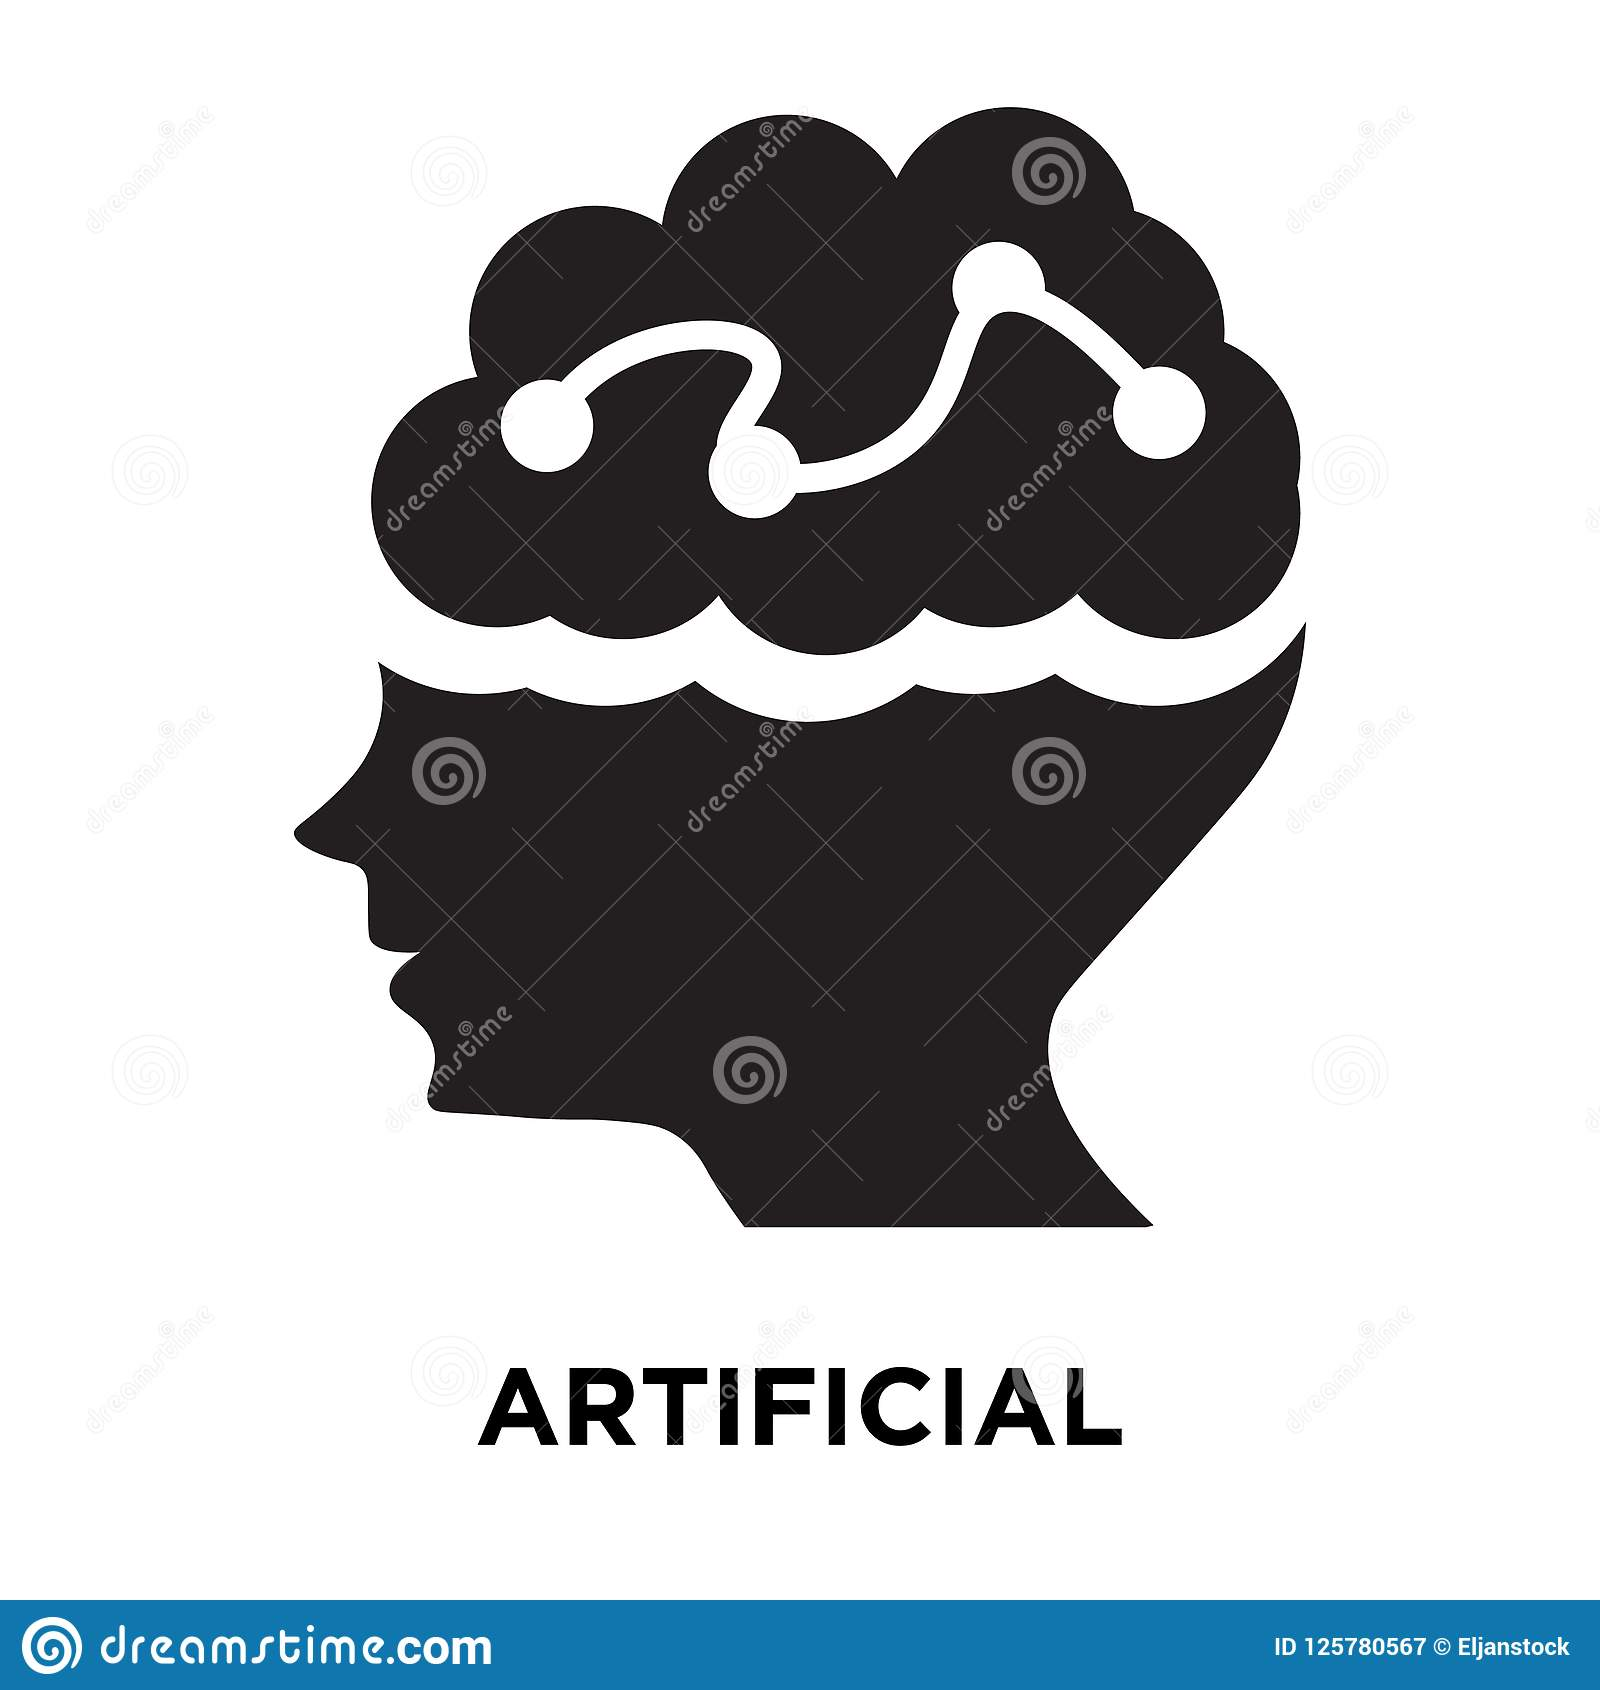 Artificial intelligence icon vector isolated on white background